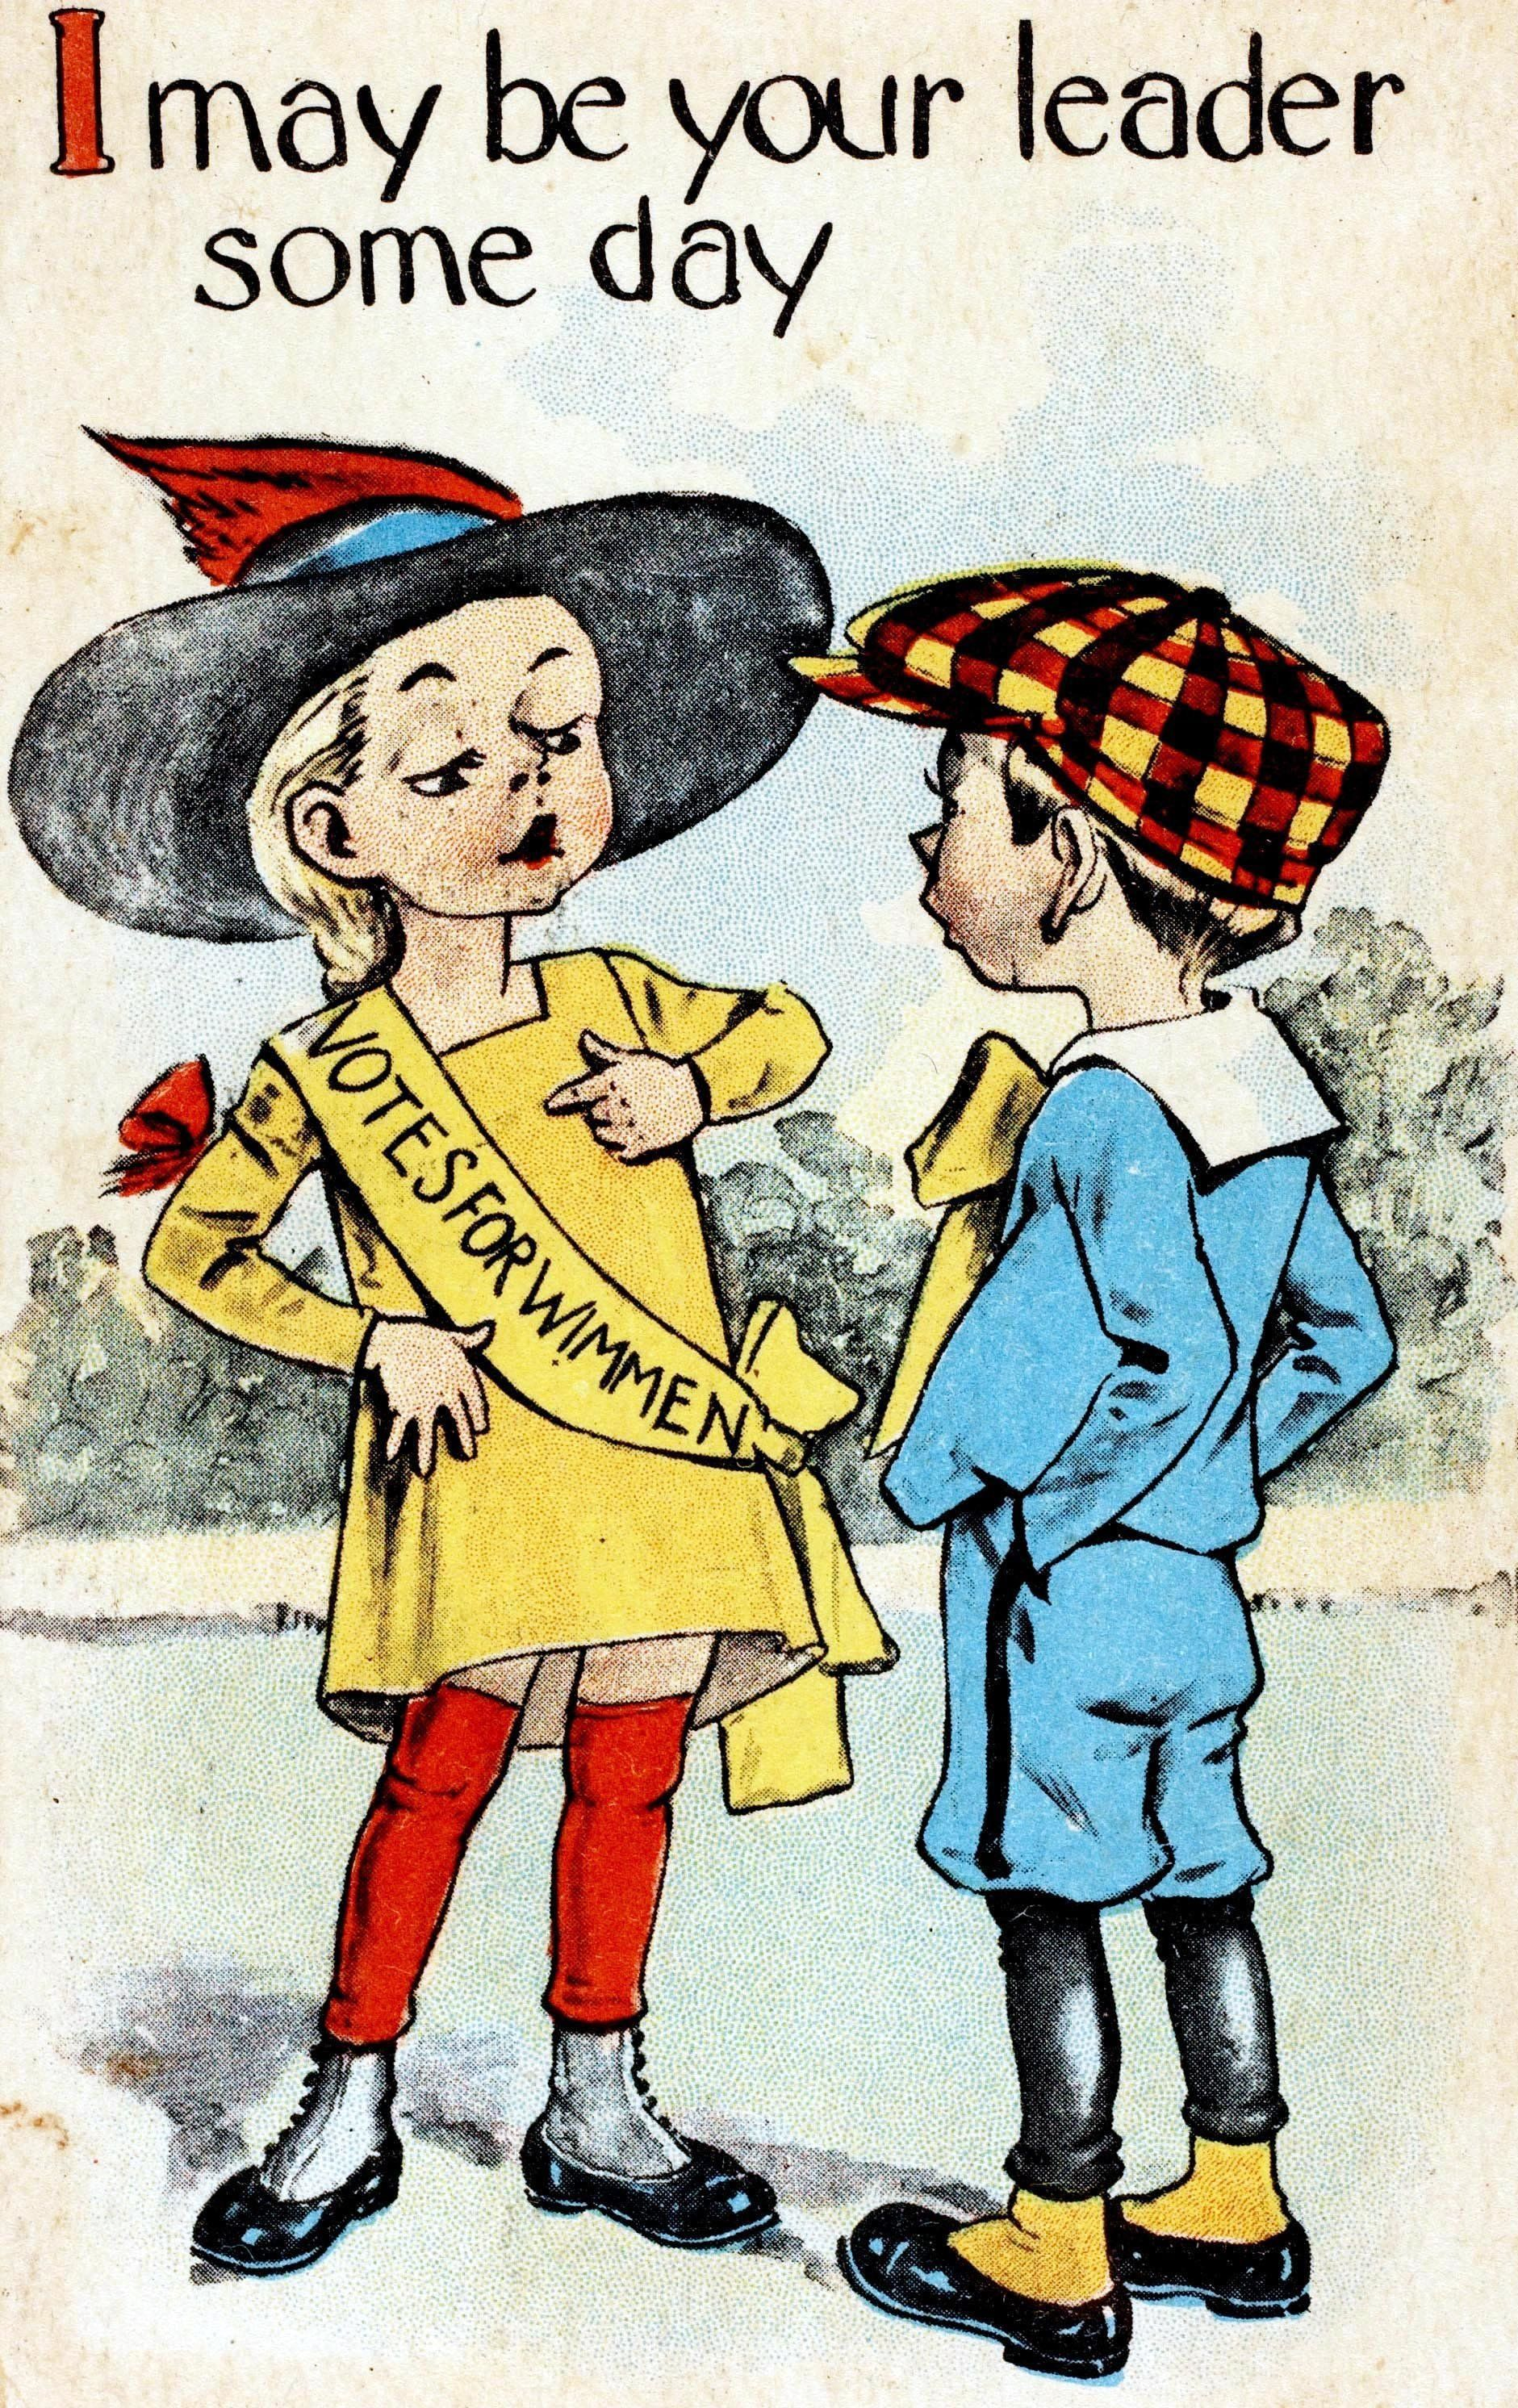 Postcards, Suffragettes, Circa 1912, A colour illustration of a girl wearing a yellow banner which has -Votes for Wimmen+ written on it as she express+s the campaign to another boy, Written above is the statement -I may be your leader some day+  (Photo by Bob Thomas/Popperfoto/Getty Images)